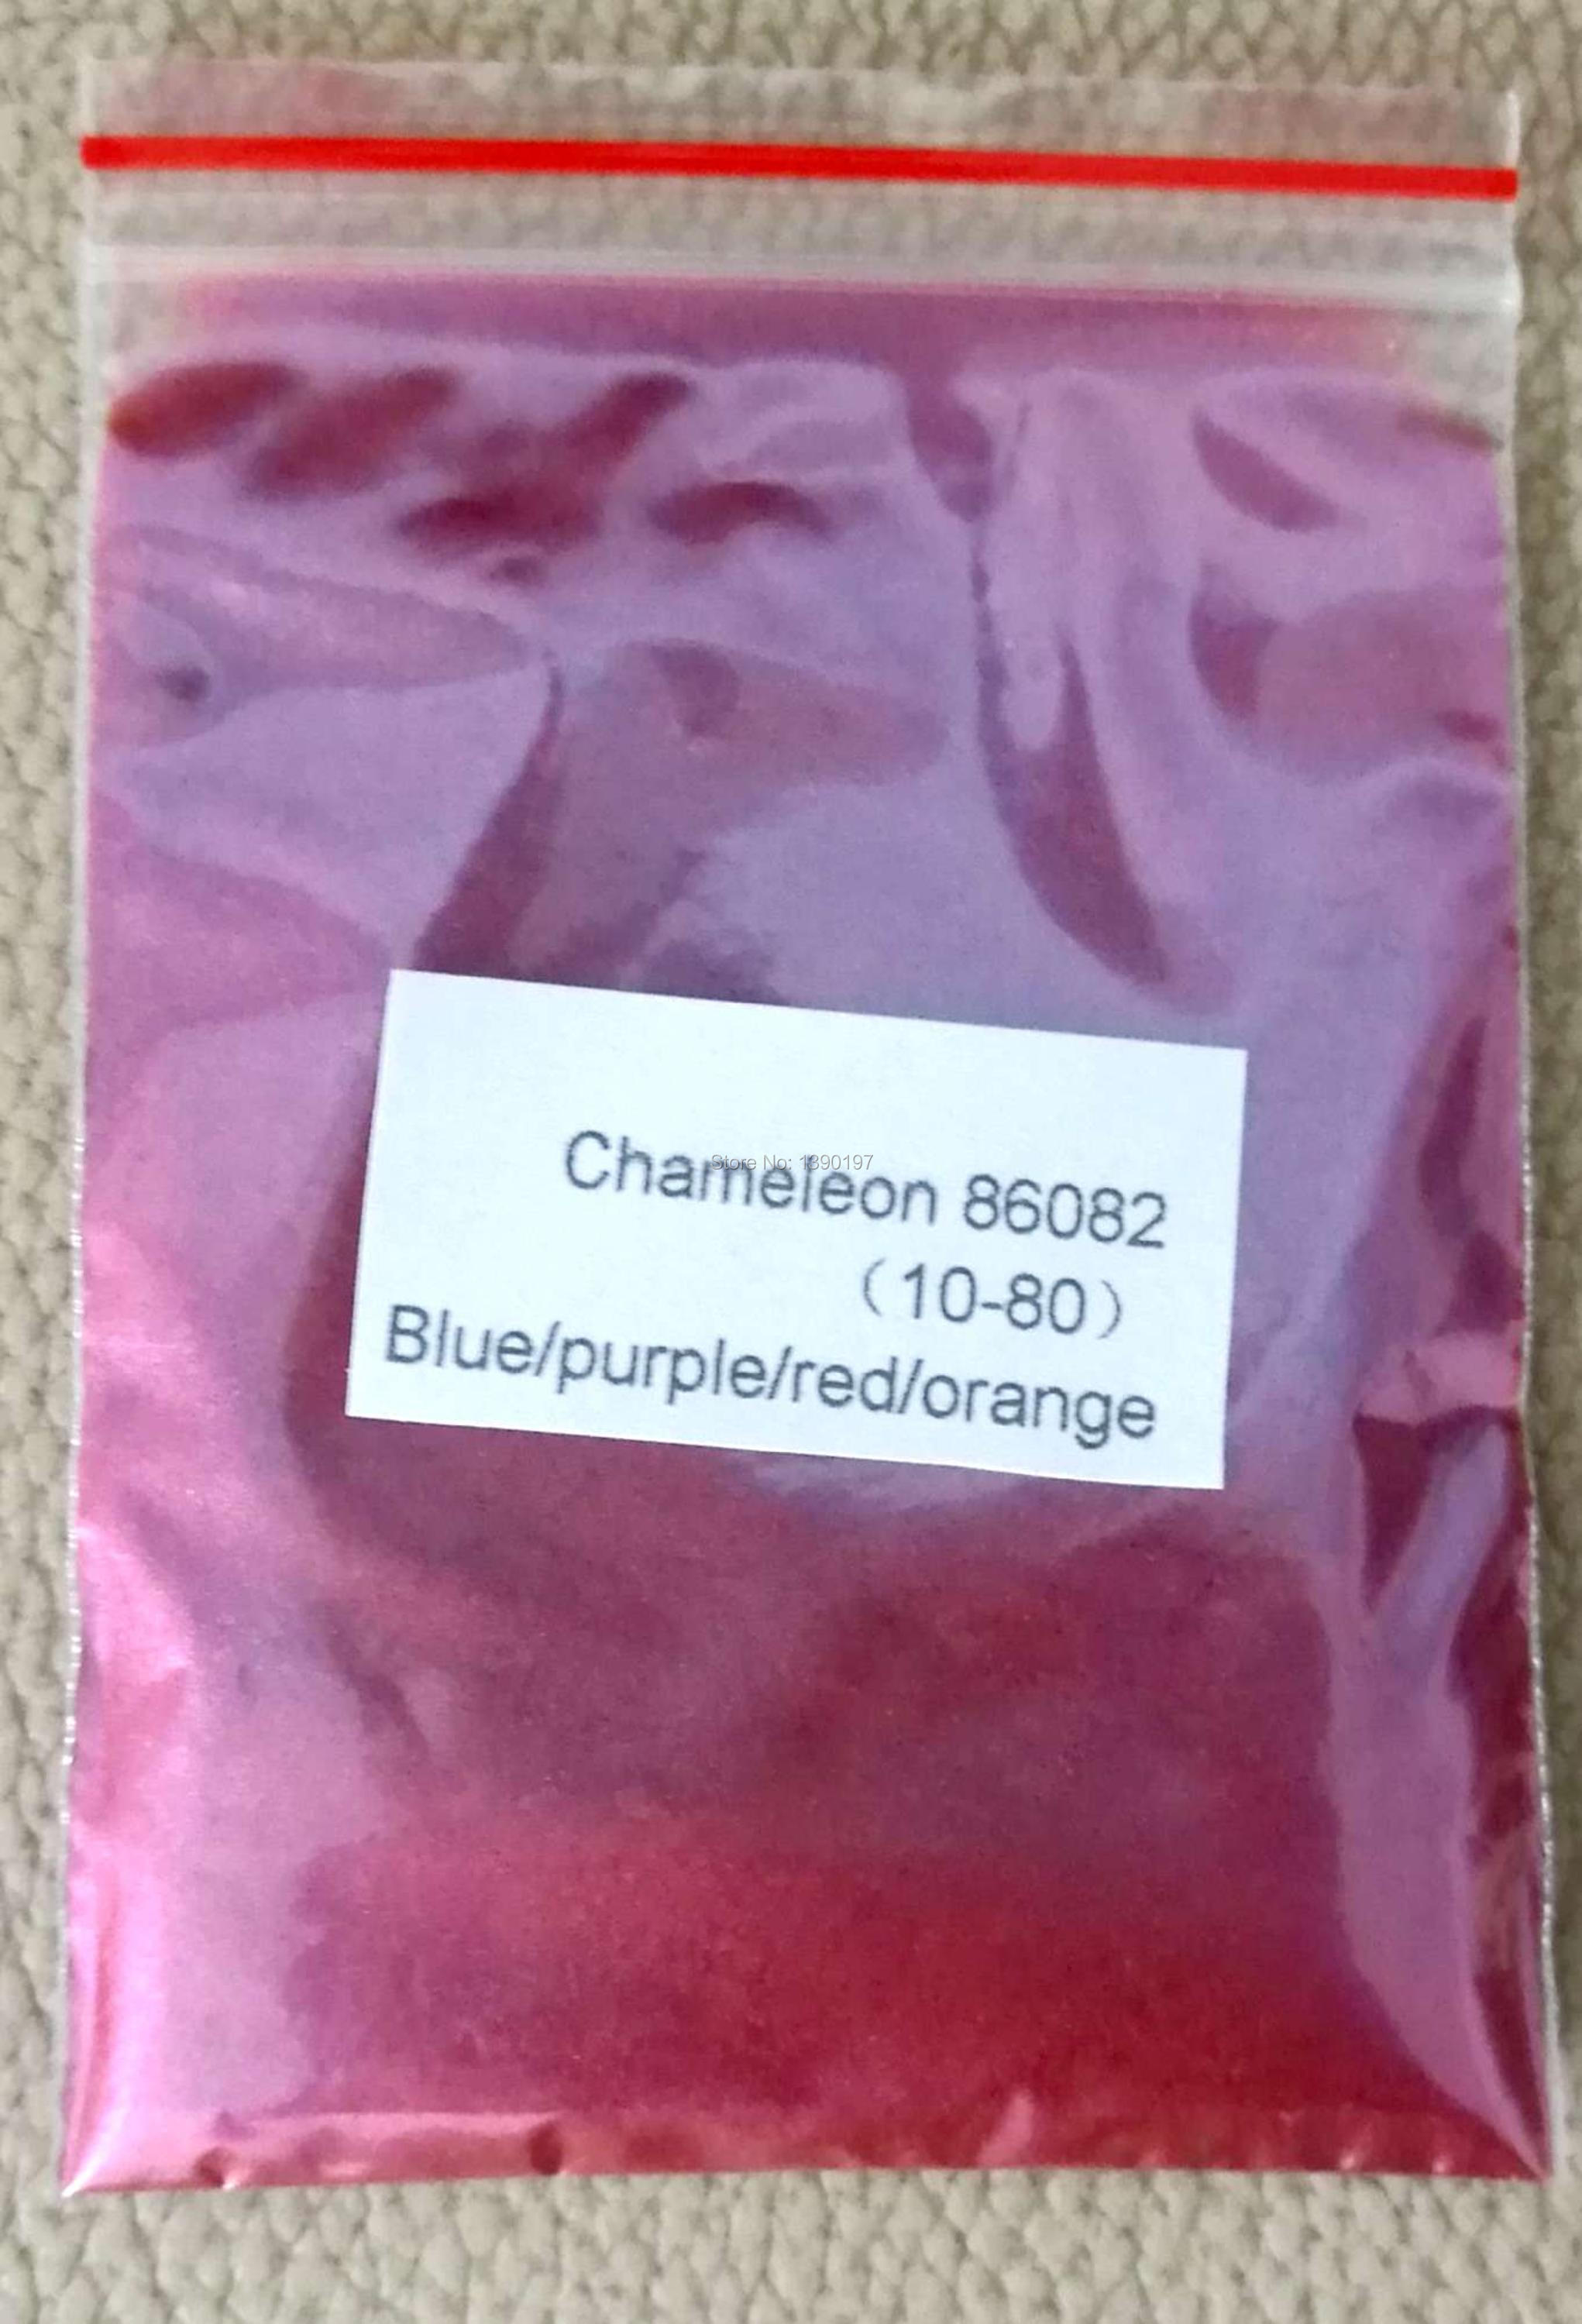 Chameleon Pigments, color changing paints,chameleon  pearl effect powder   for auto paint, coating, cosmetics, plastics.pigment for paintpigment chameleonpigment color -